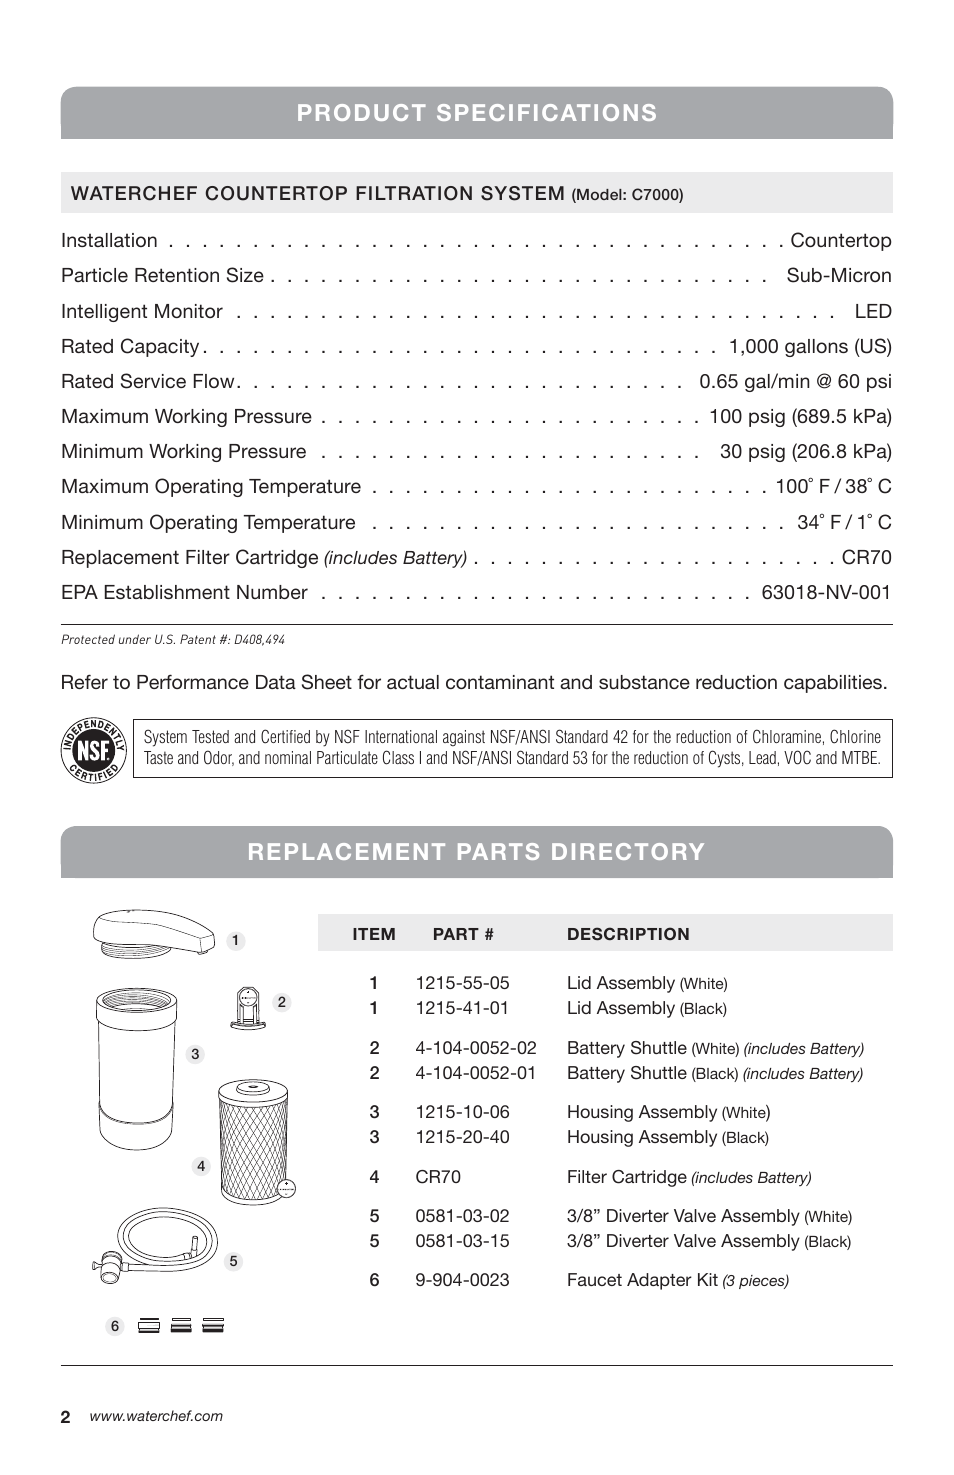 Product specifications, Replacement parts directory | WaterChef